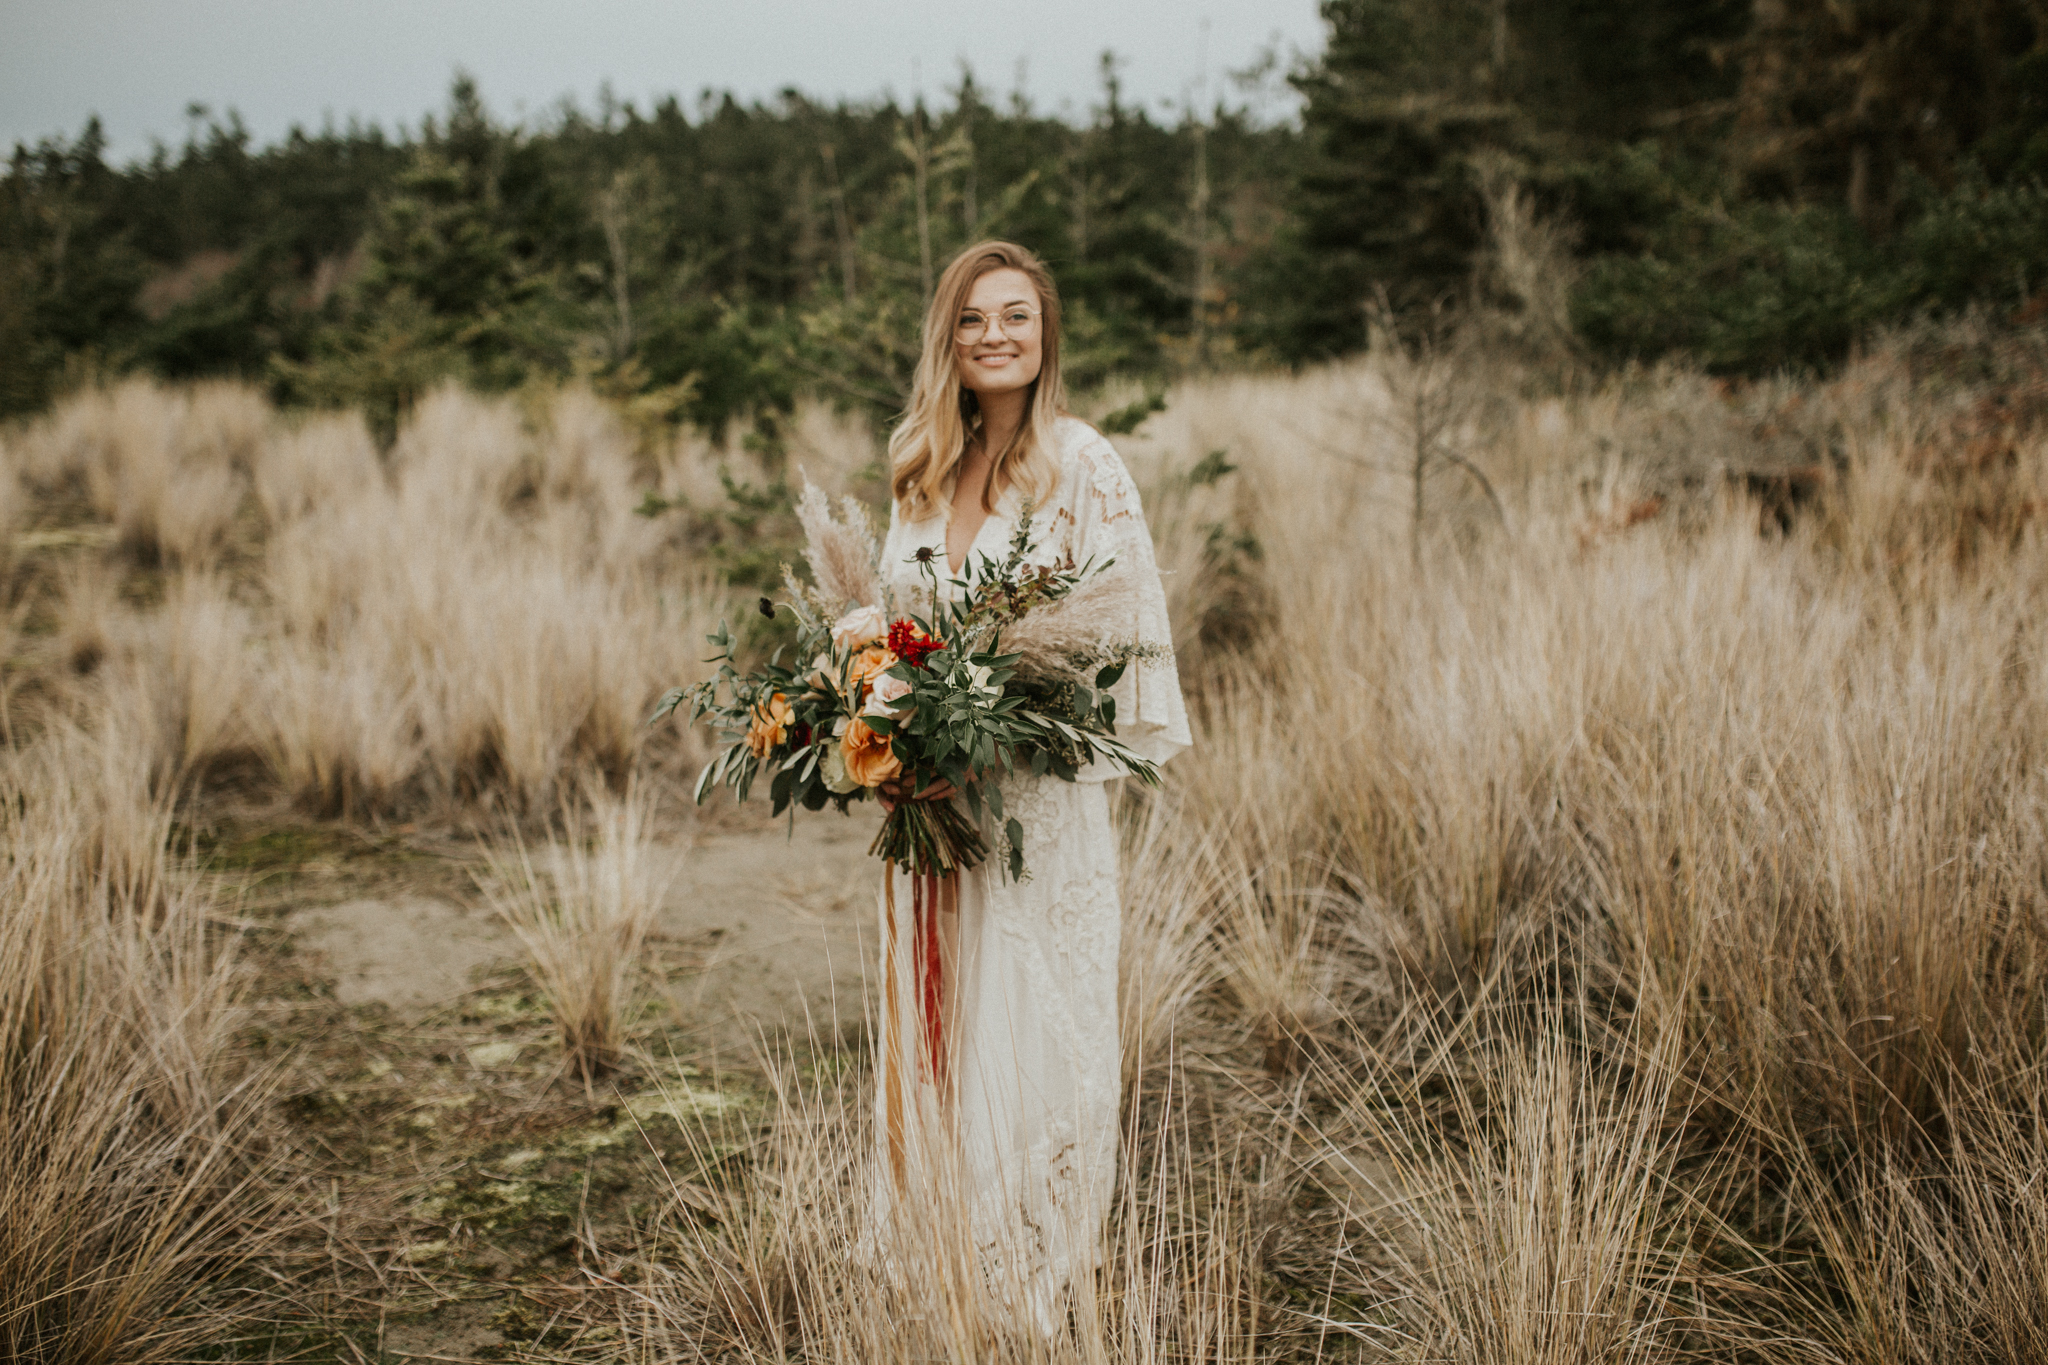 Rosemary & Pine Photography | Styled Washington Elopement at Deception Point